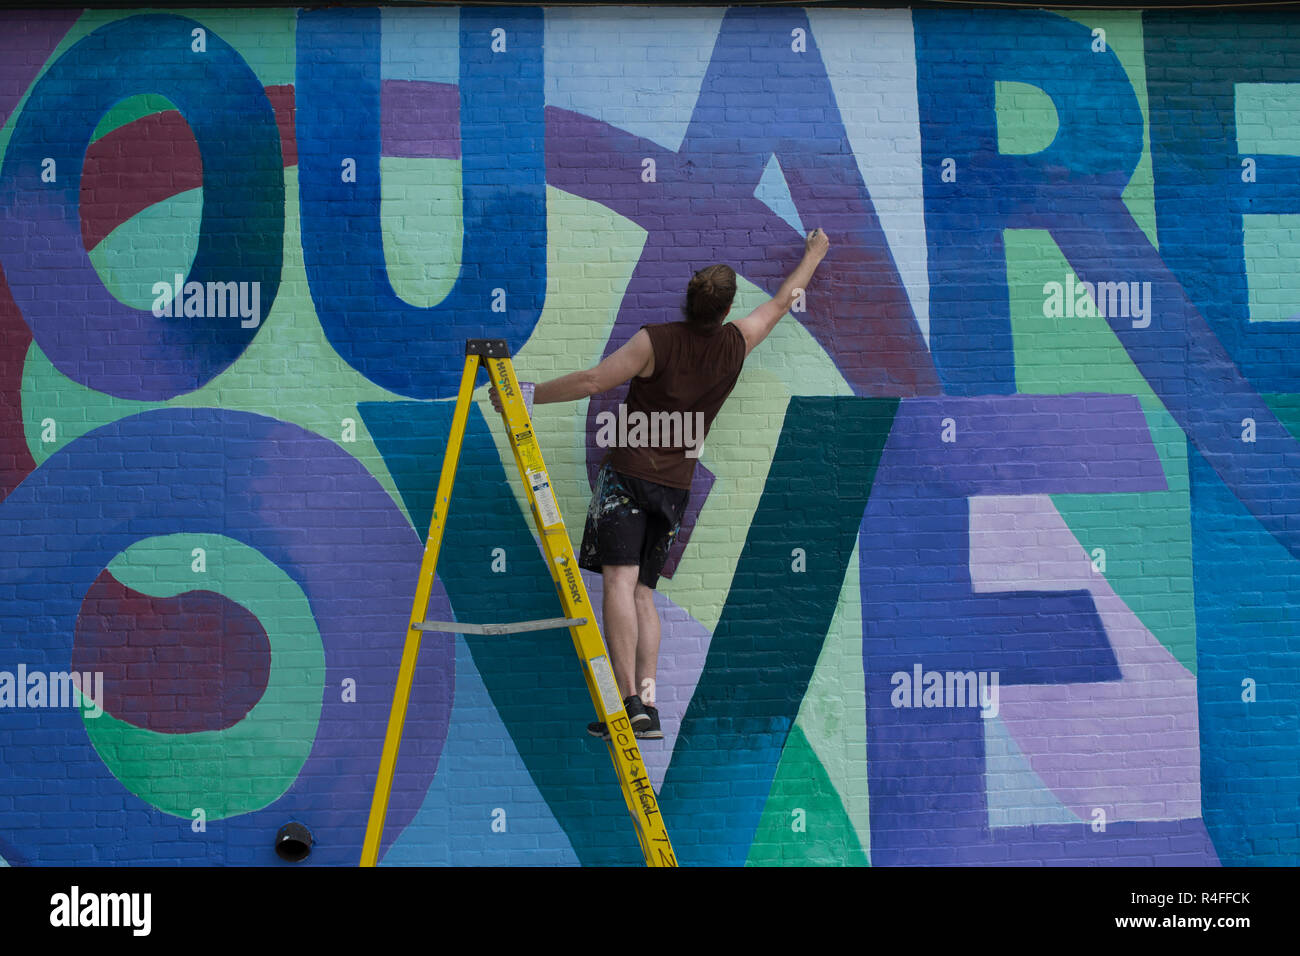 Mural artist just south of Church Street Marketplace. Goes around the country painting murals for various civic groups and cities. - Stock Image